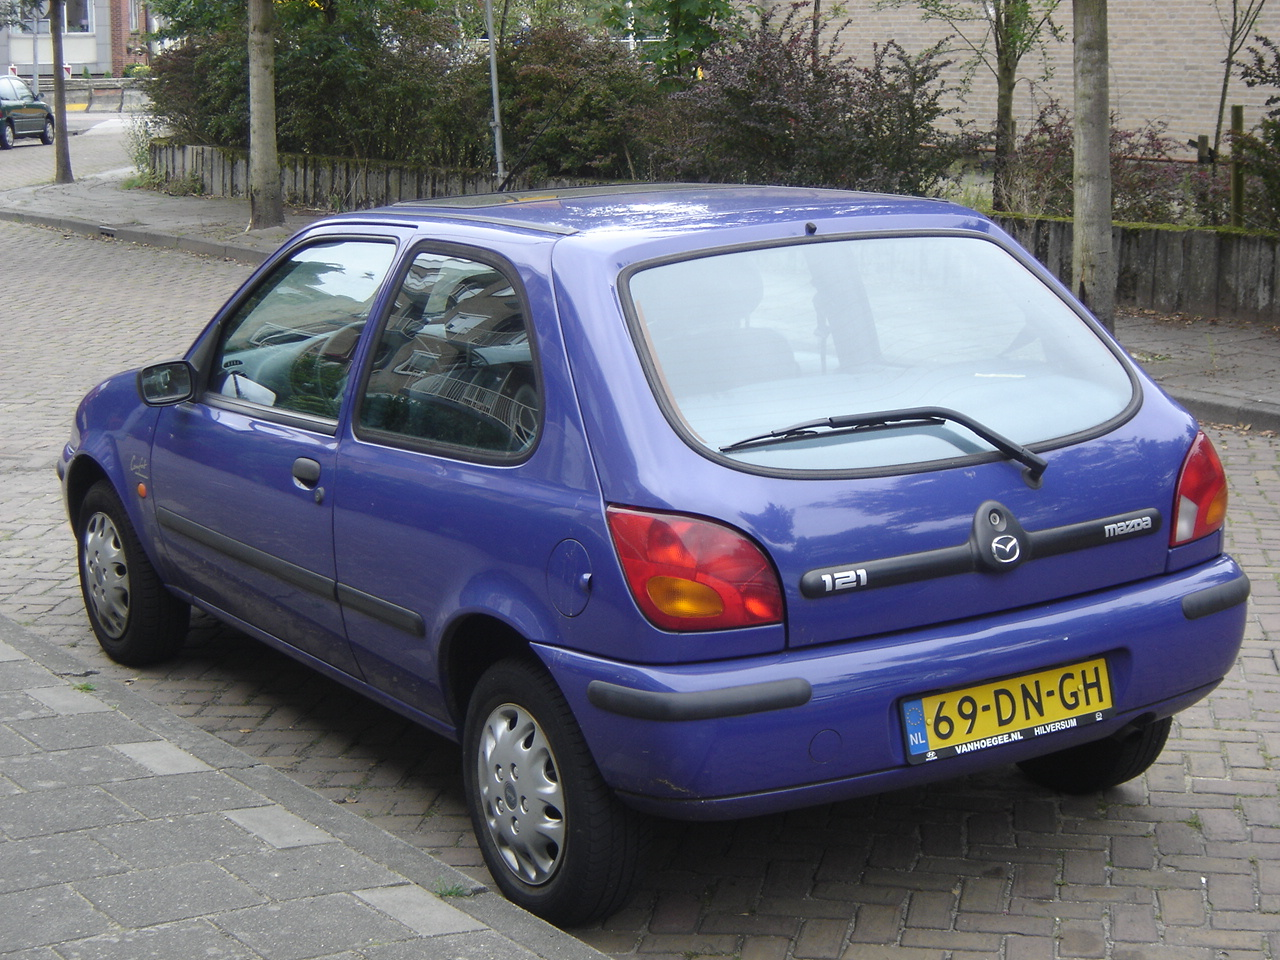 Hilversum: 1999 Mazda 121 | Flickr - Photo Sharing!